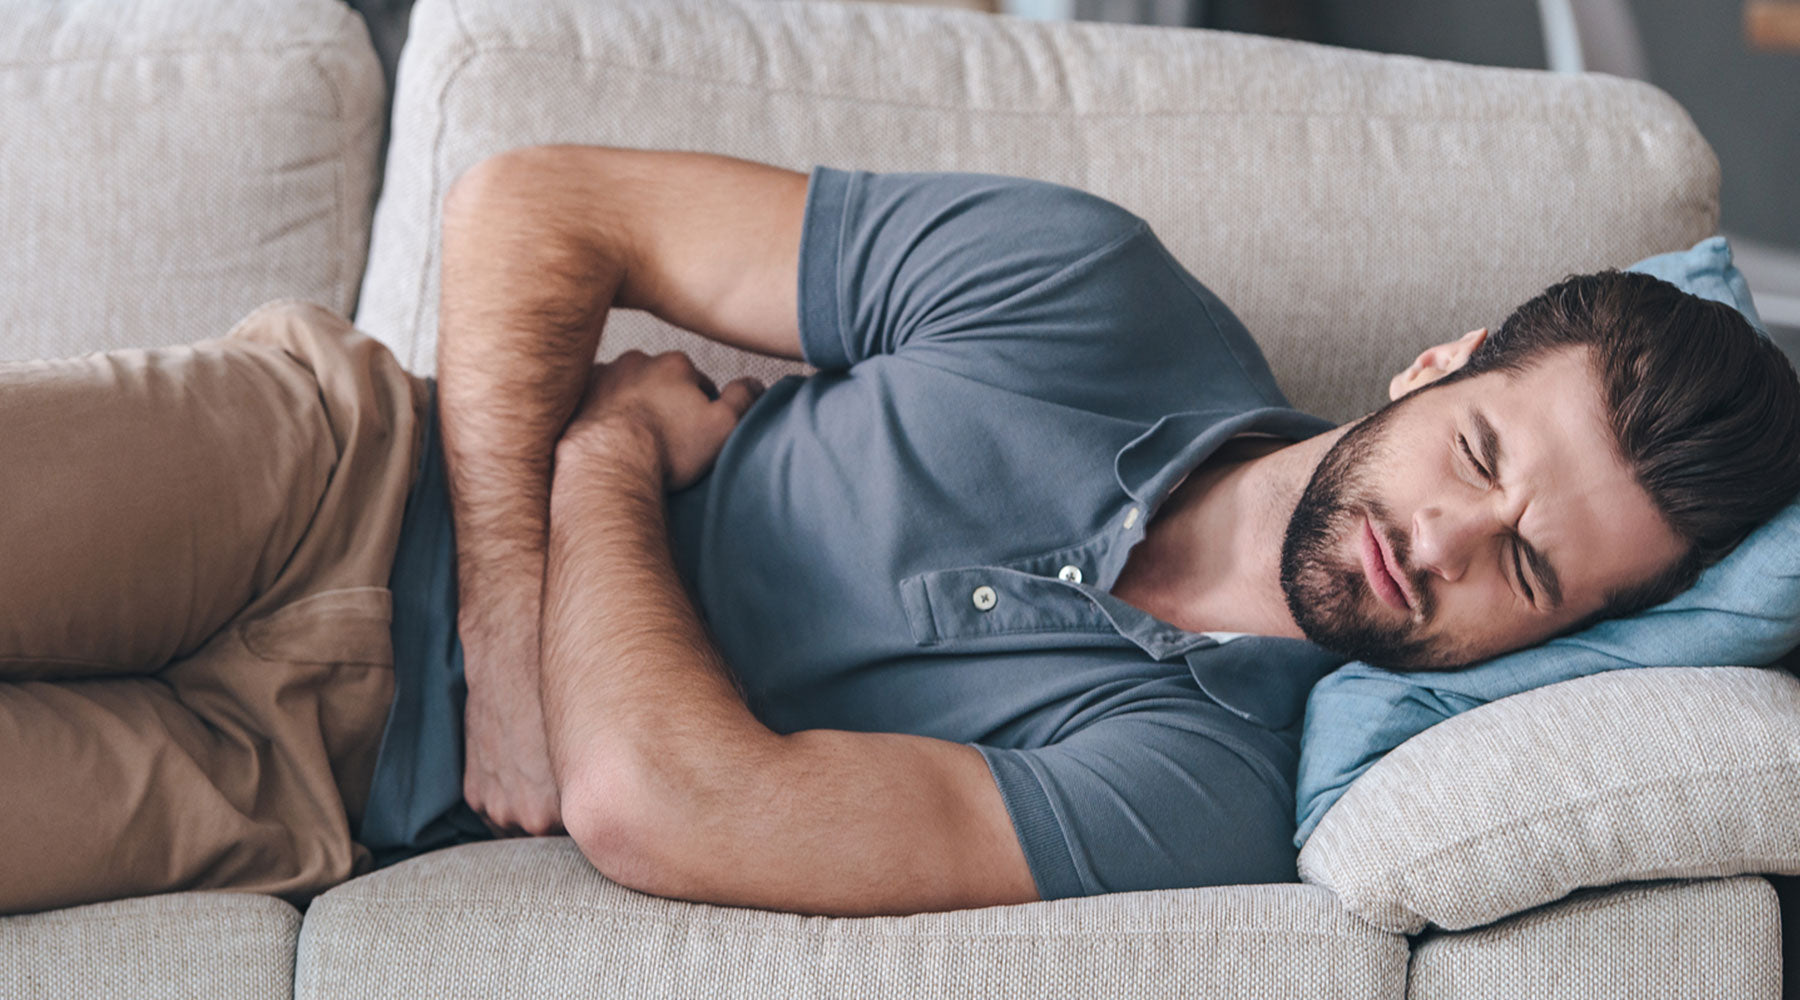 man with bad GERD trying nap on couch